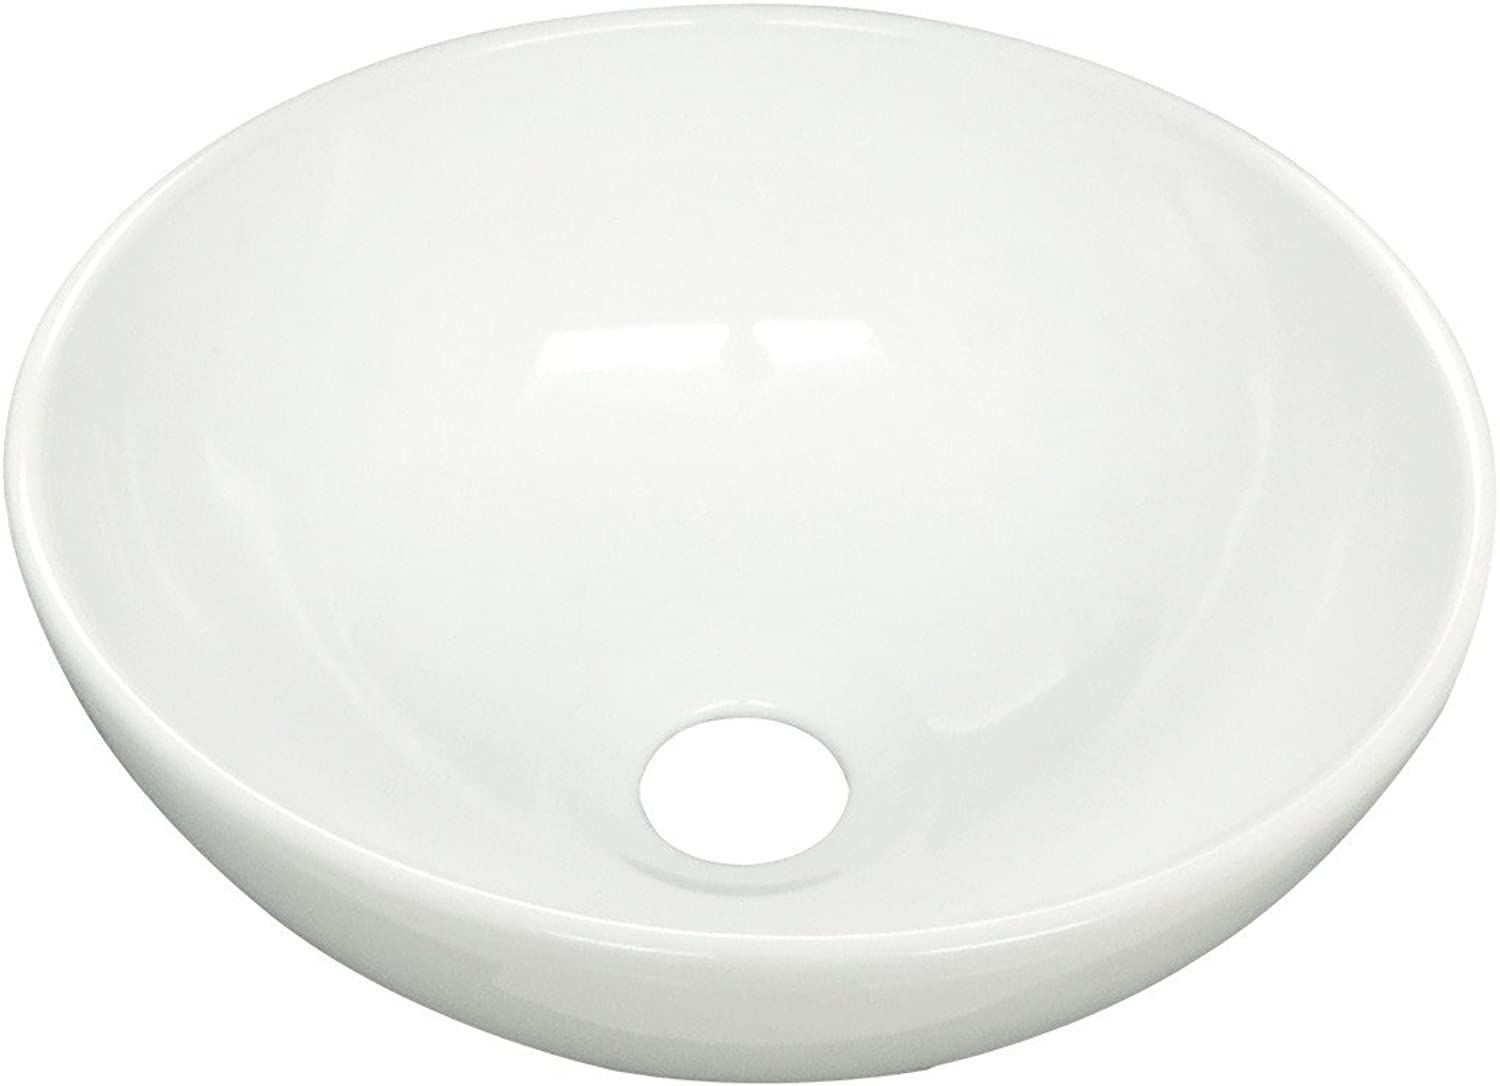 White Ceramic Mini Small Round Above Counter Vessel Bathroom Sink Space Saving Scratch And Stain Resistant Design